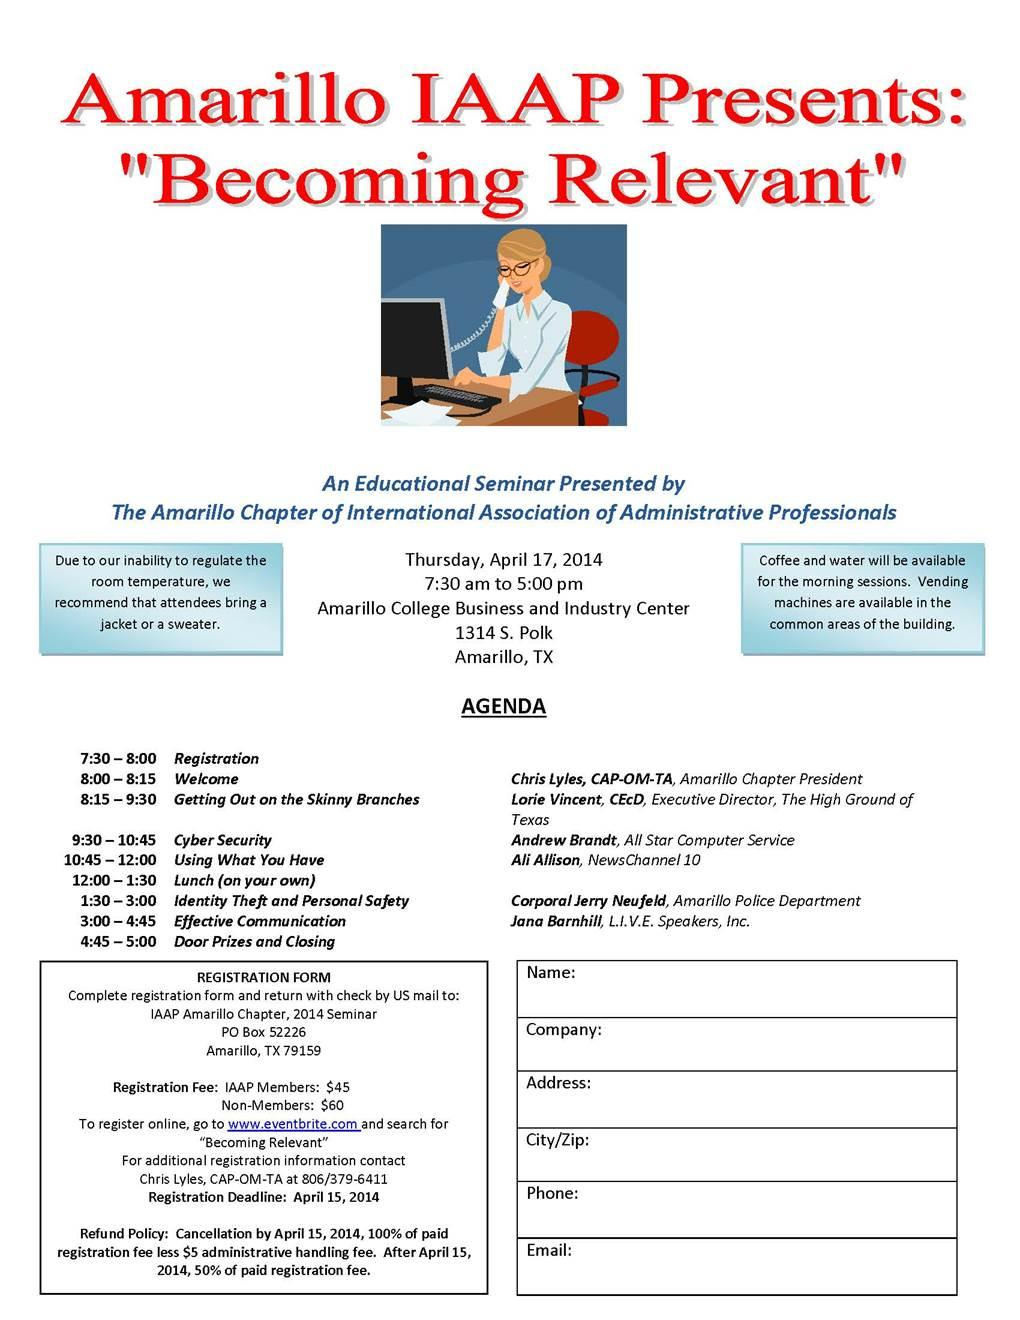 Amarillo IAAP Presents - Becoming Relevant